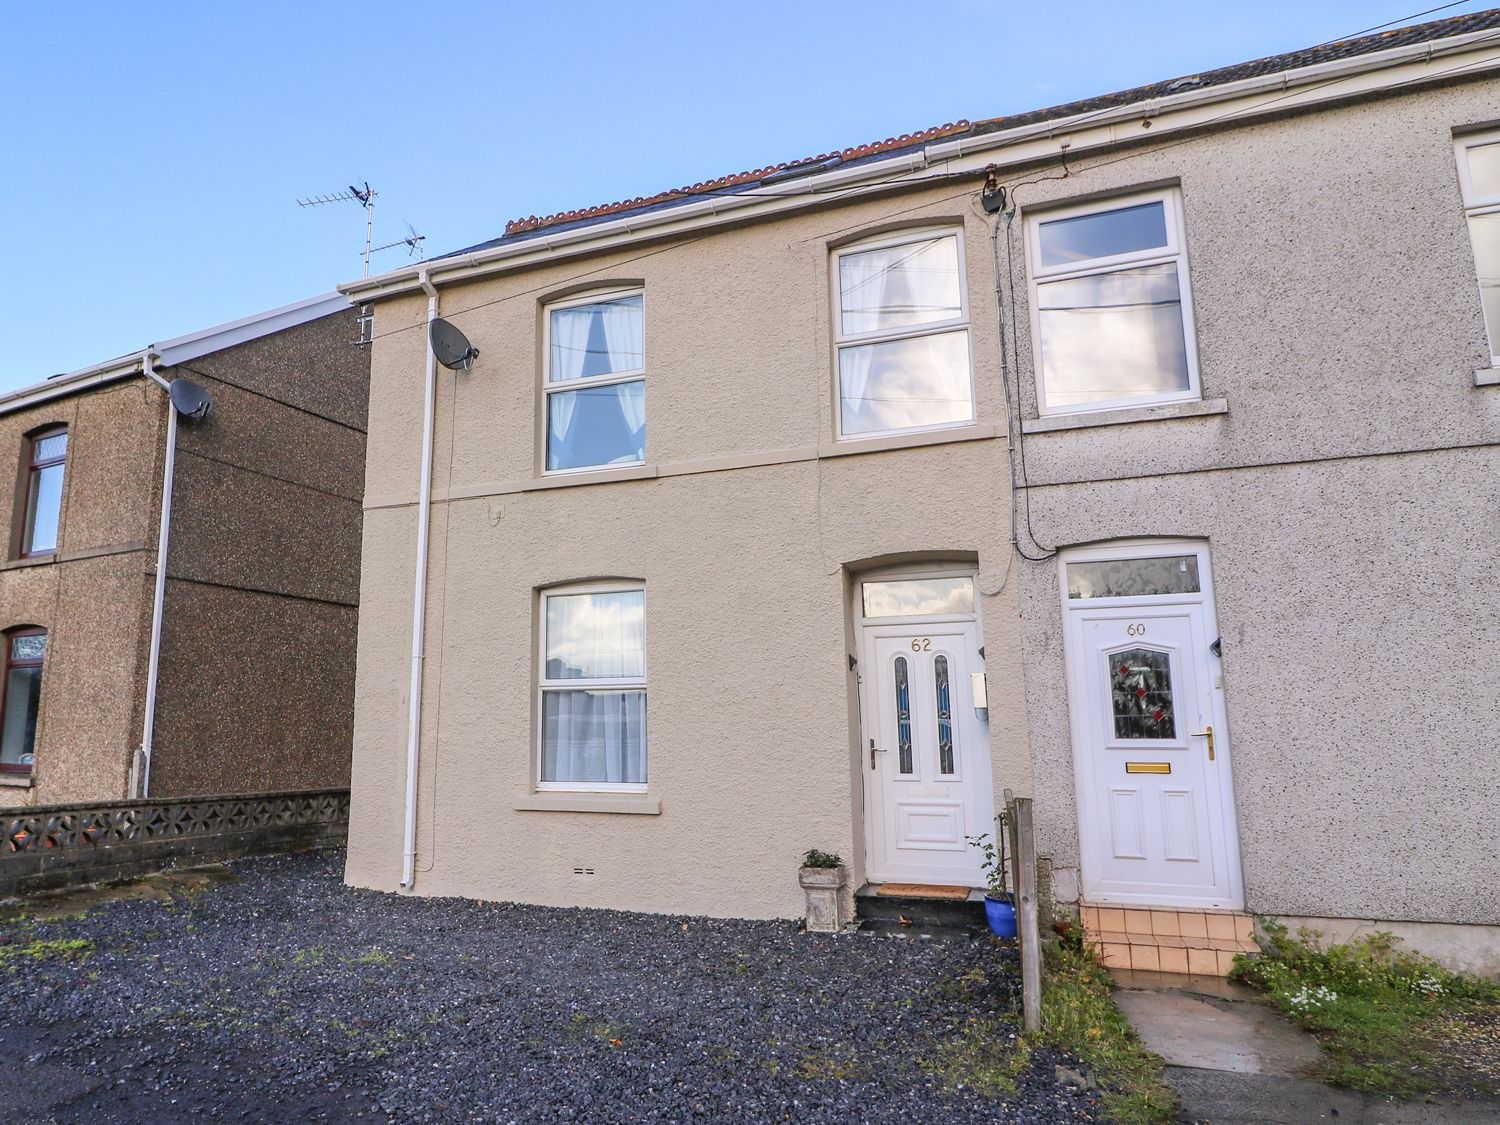 62 Danlan Road - South Wales - 970108 - photo 1